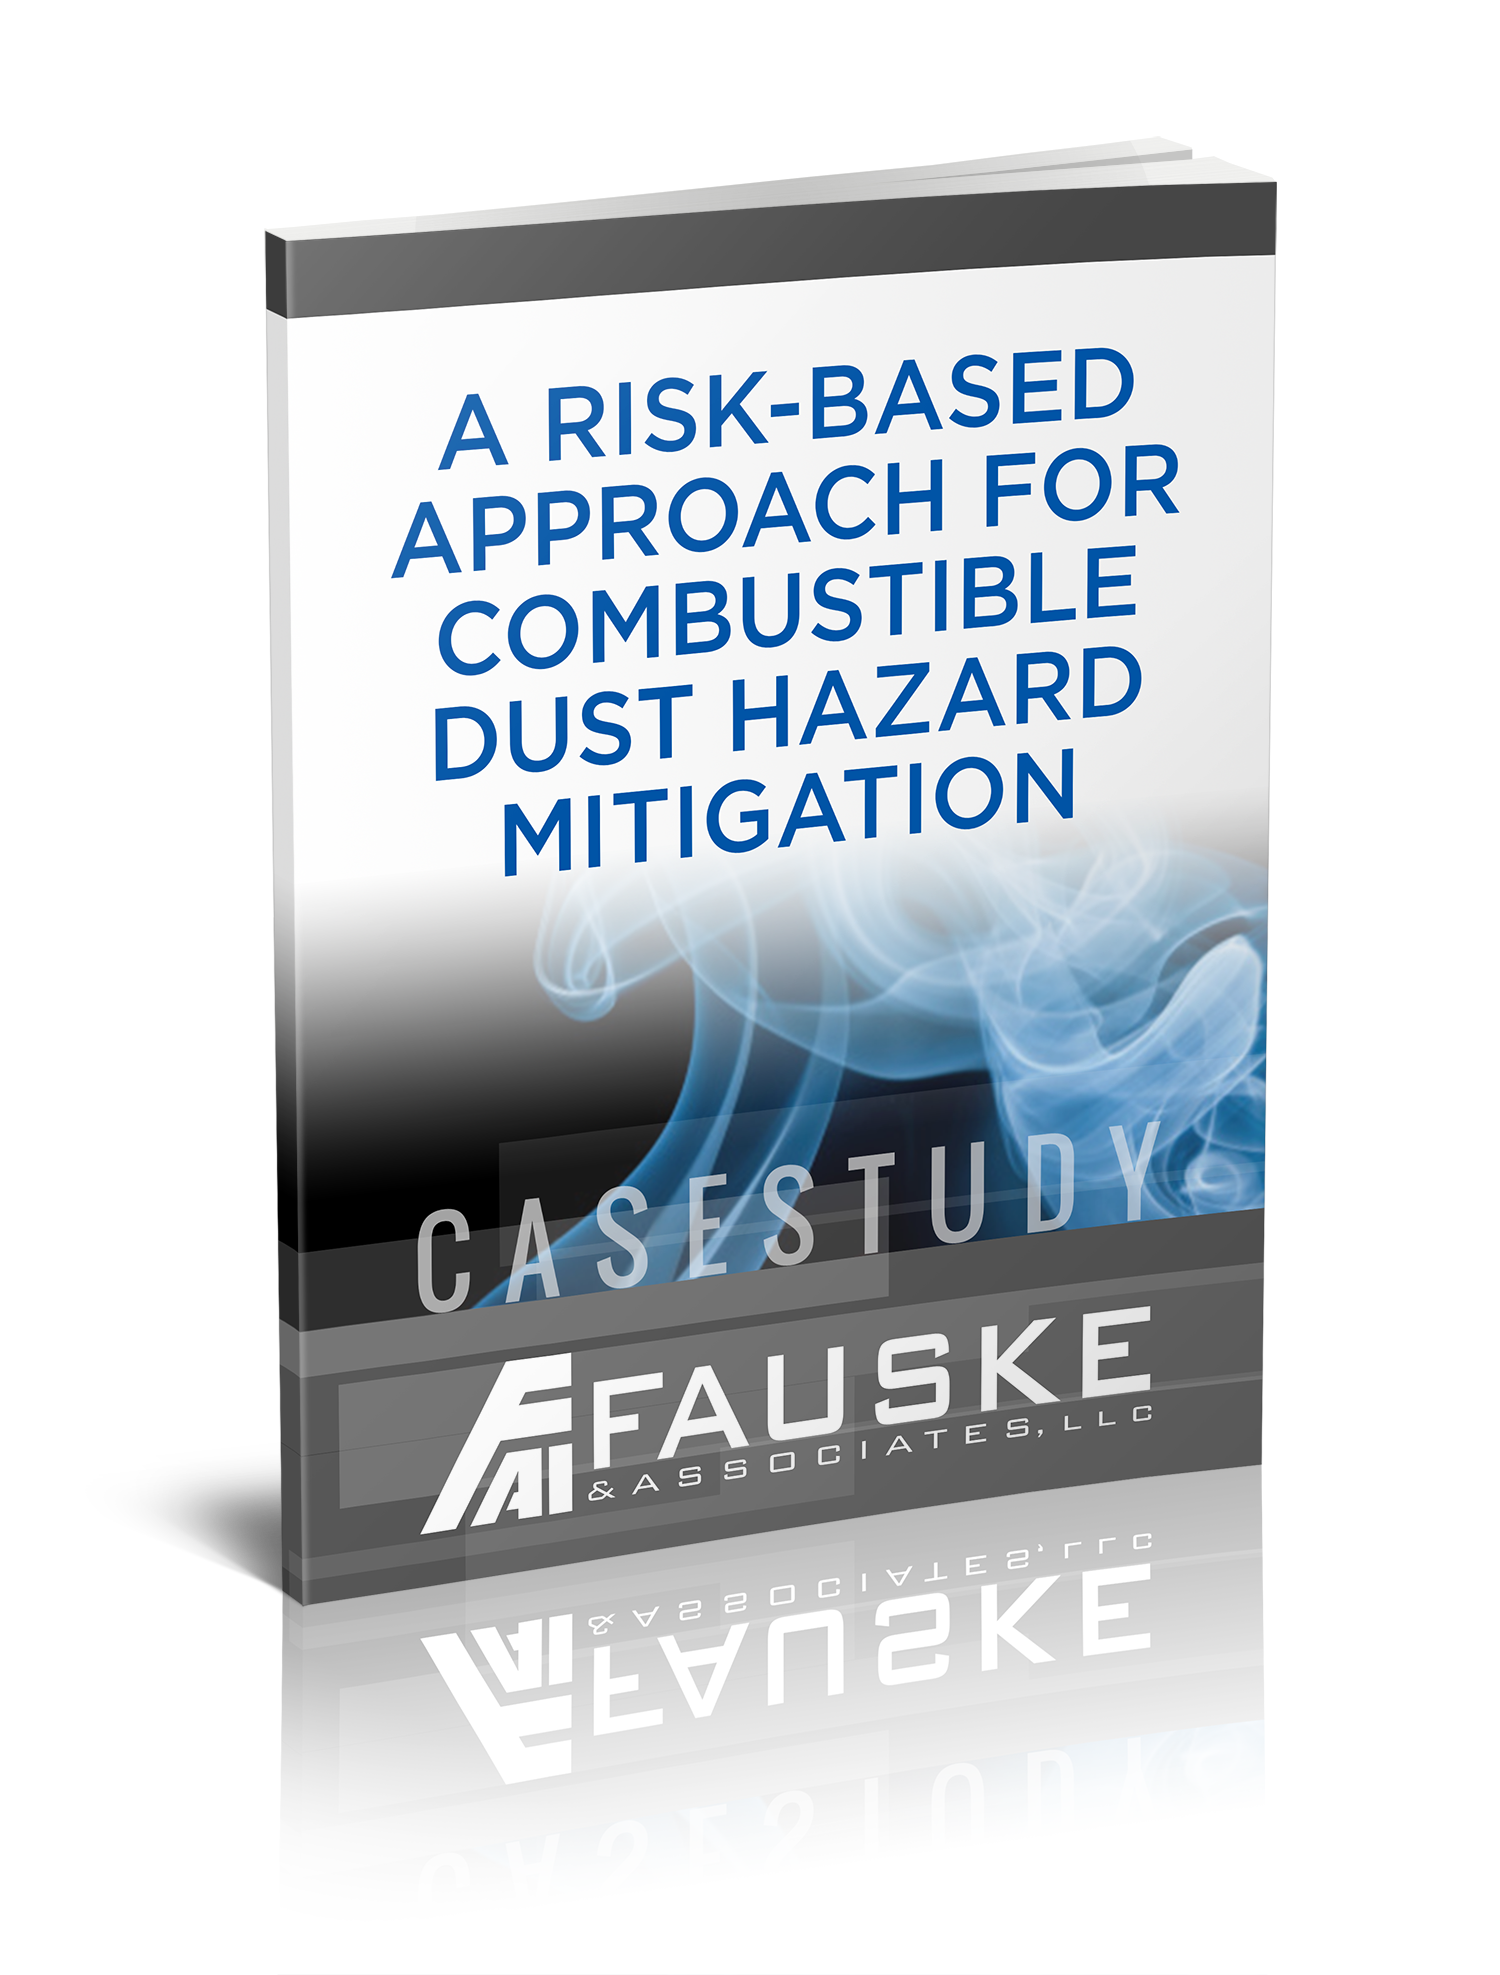 fauske-cs-risk-based-approach